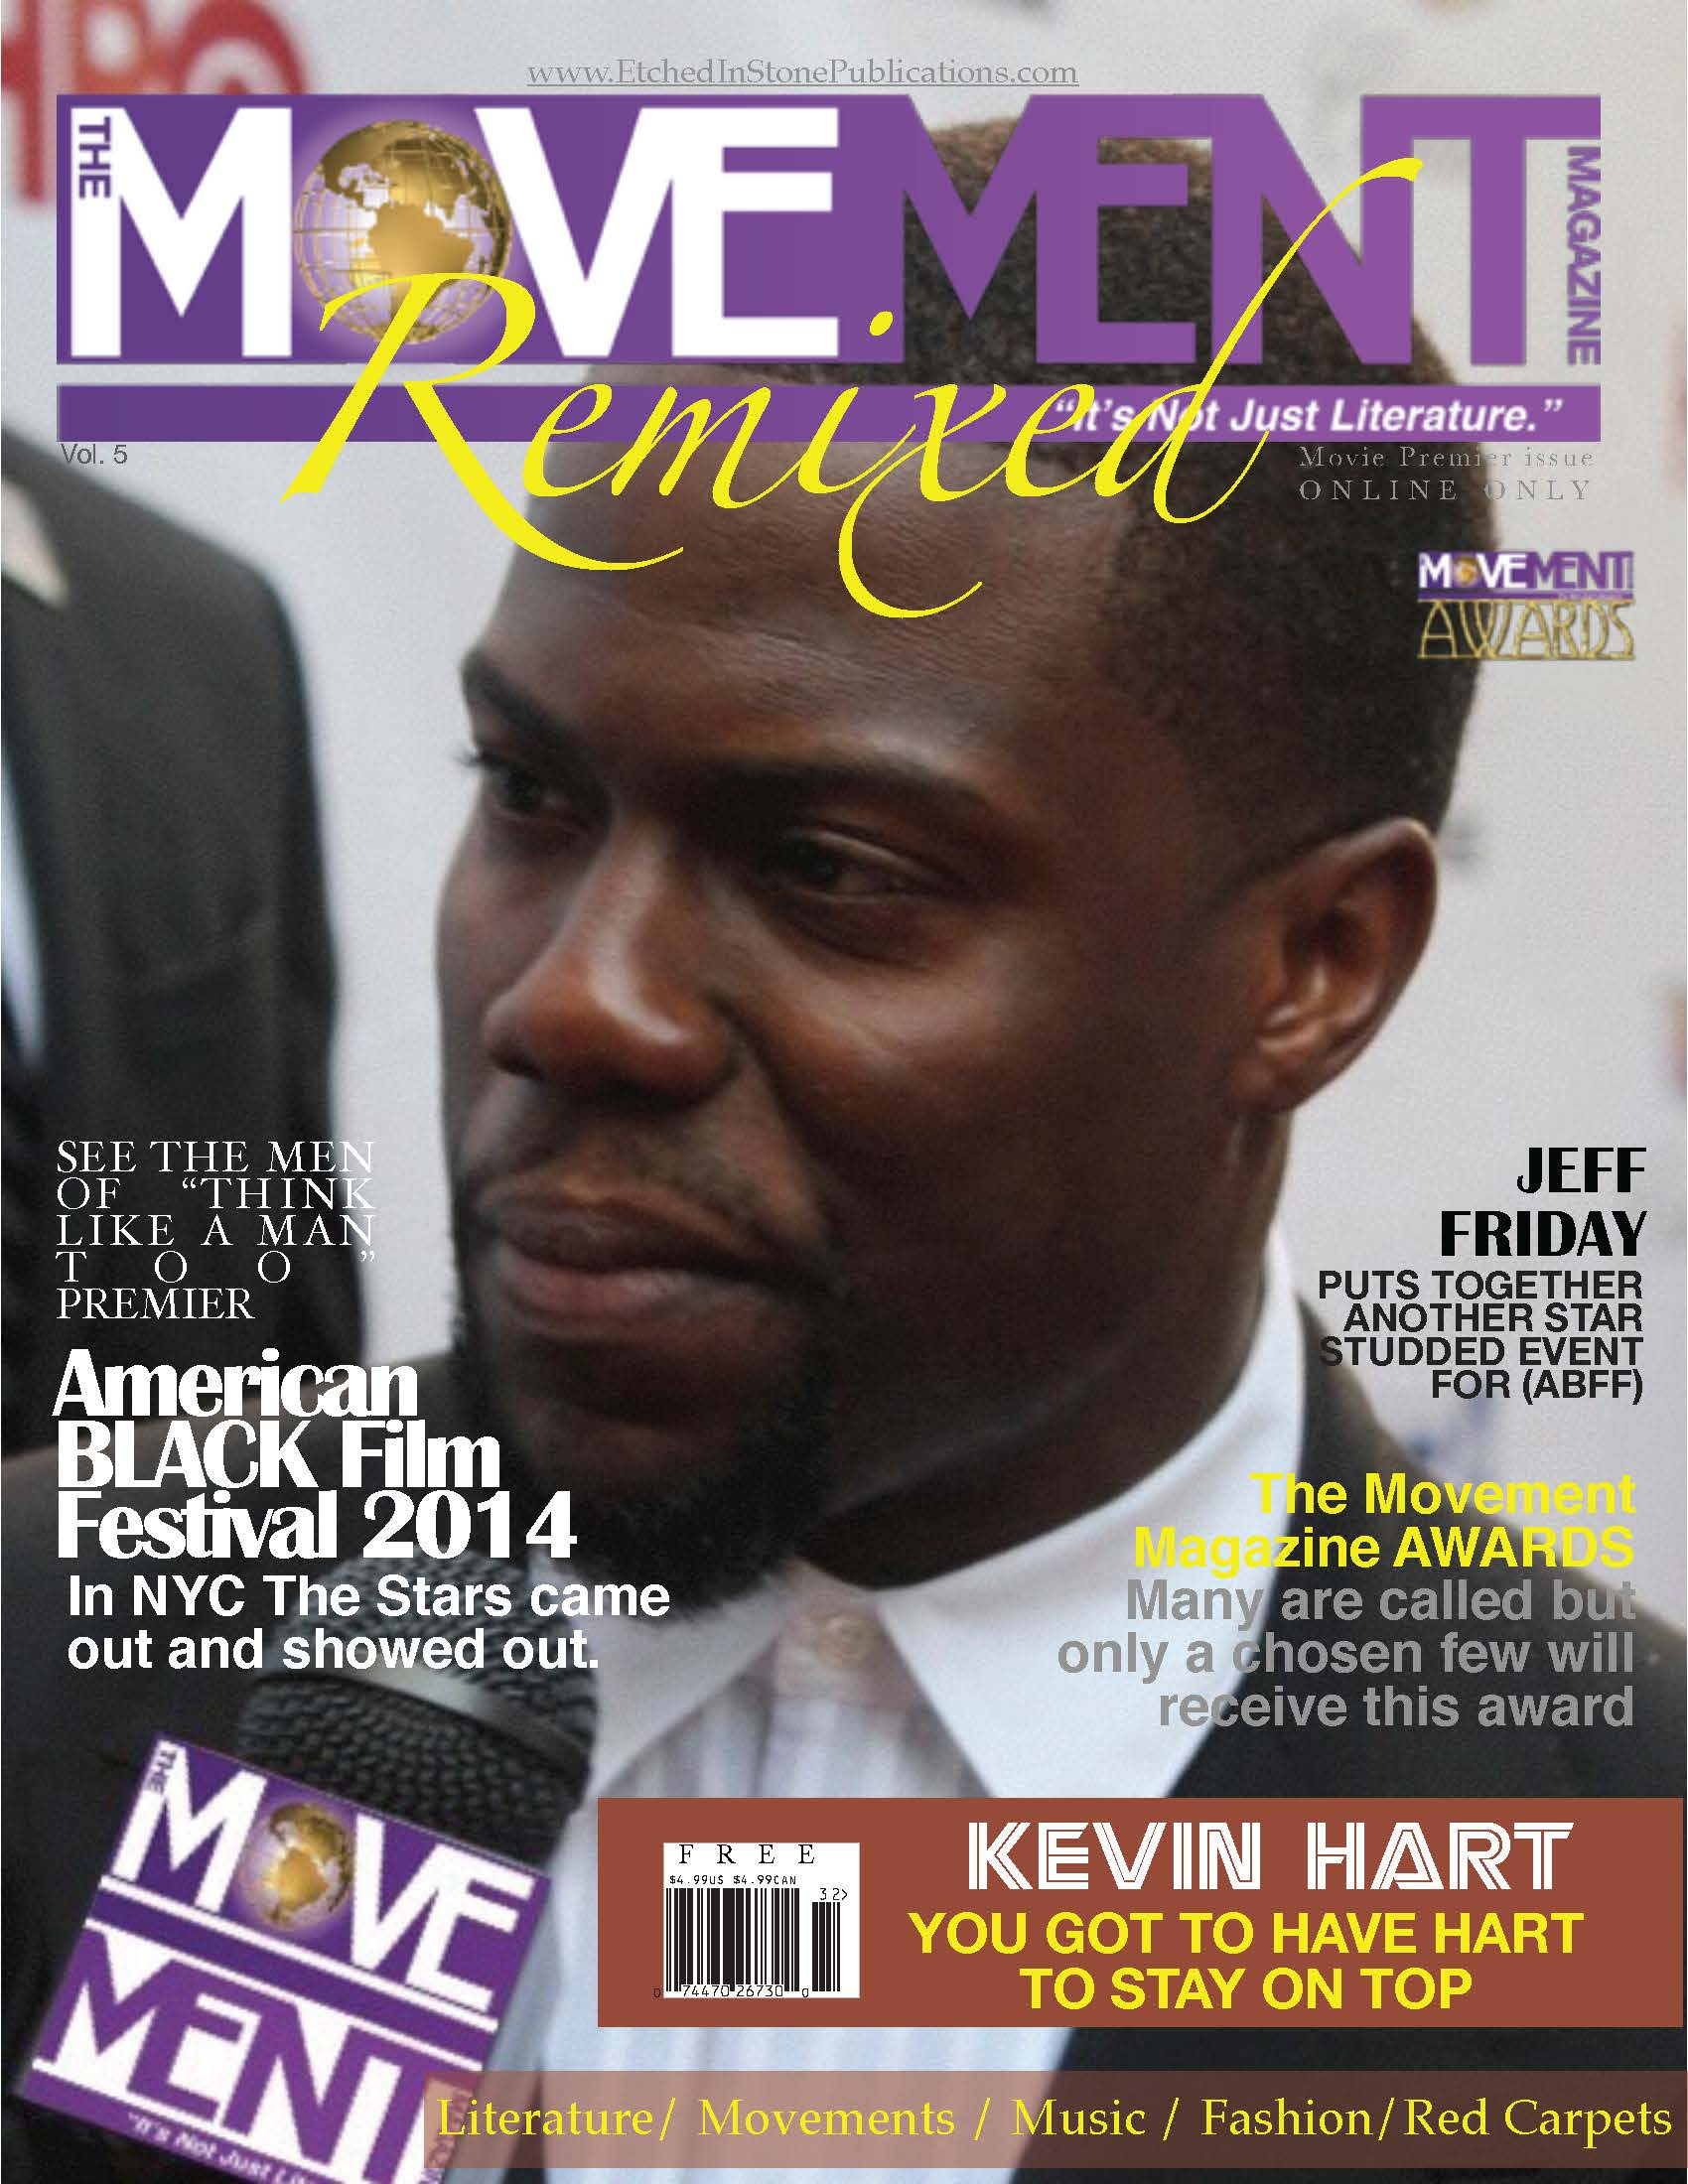 Vol 5 with Kevin Hart Cover